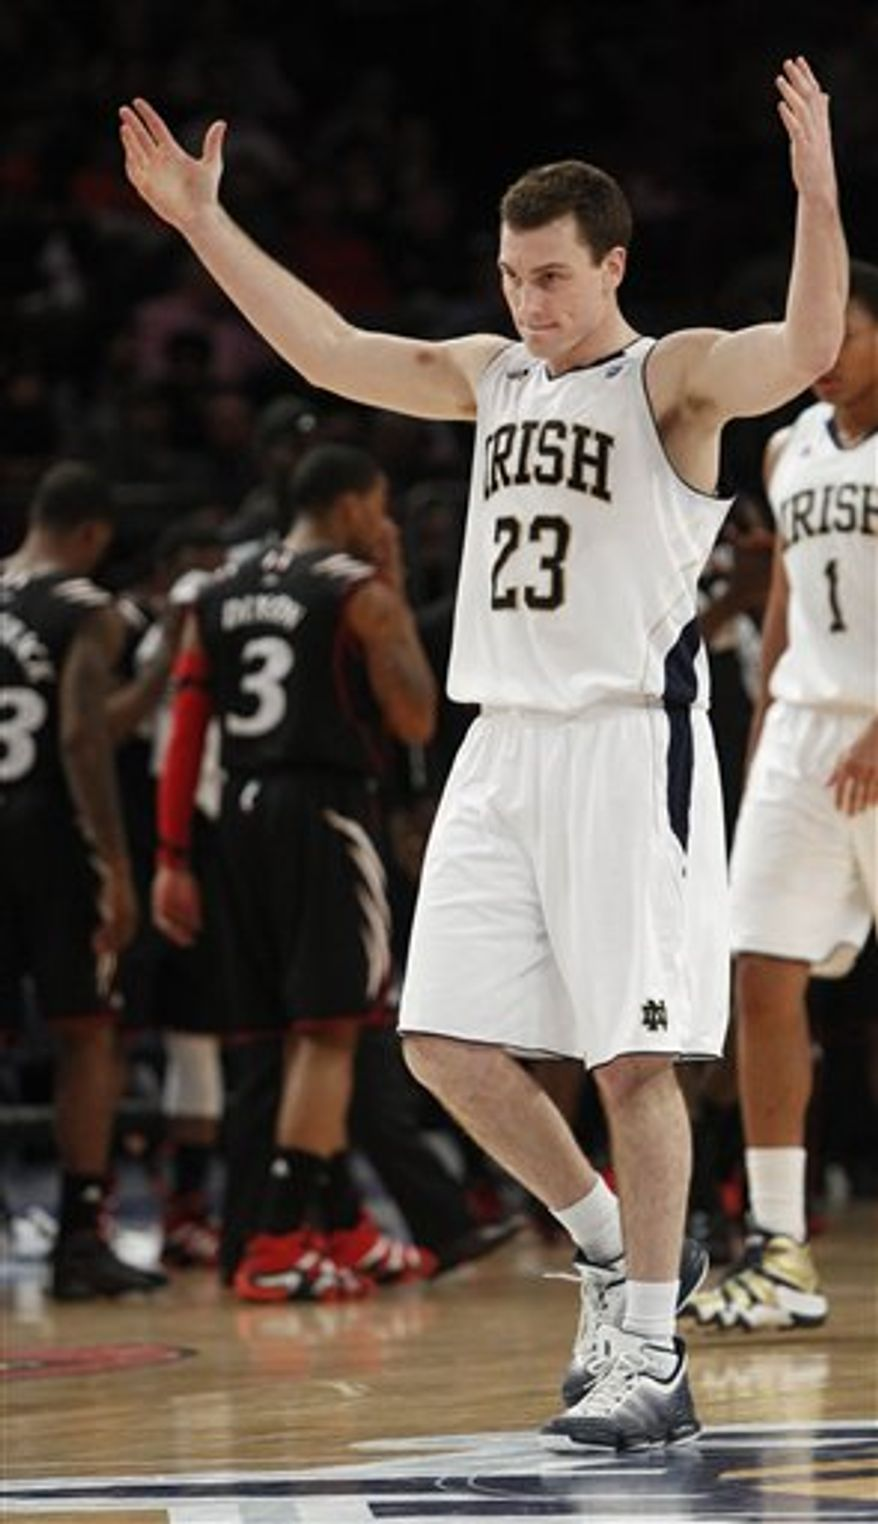 Notre Dame's Ben Hansbrough (23) reacts to the crowd during the second half of an NCAA college basketball game against Cincinnati at the Big East Championship, Thursday, March 10, 2011, in New York. Notre Dame won the game 89-51. (AP Photo/Frank Franklin II)